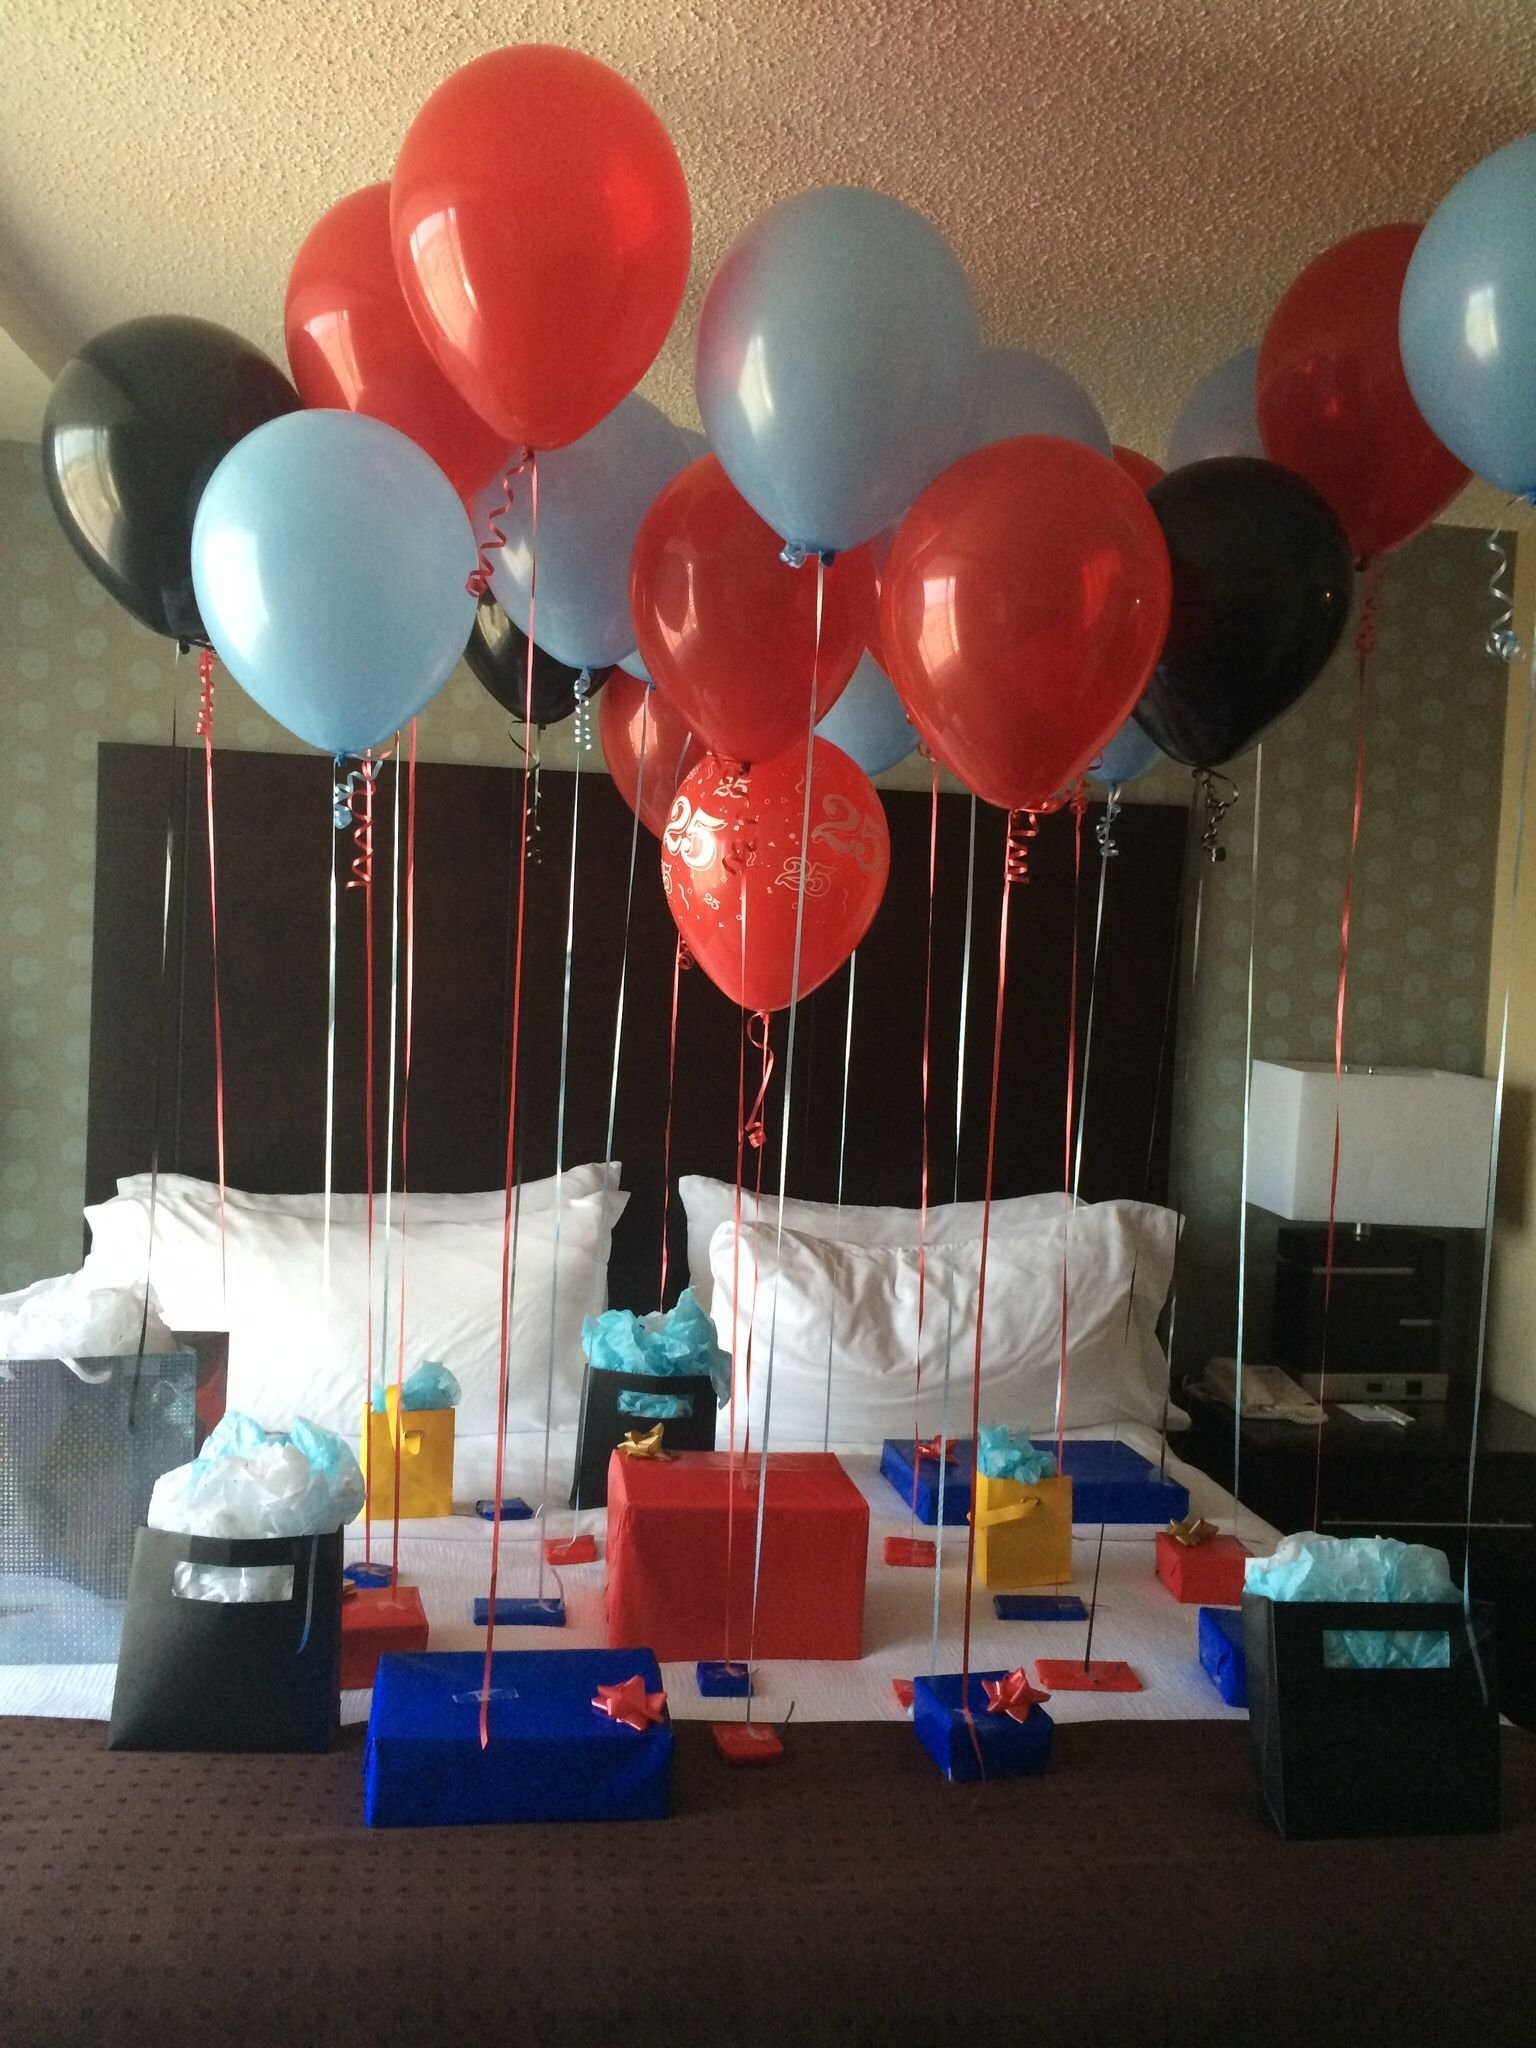 New Relationship Birthday Gift Ideas For Him  10 Most Re mended 25Th Birthday Ideas For Boyfriend 2020